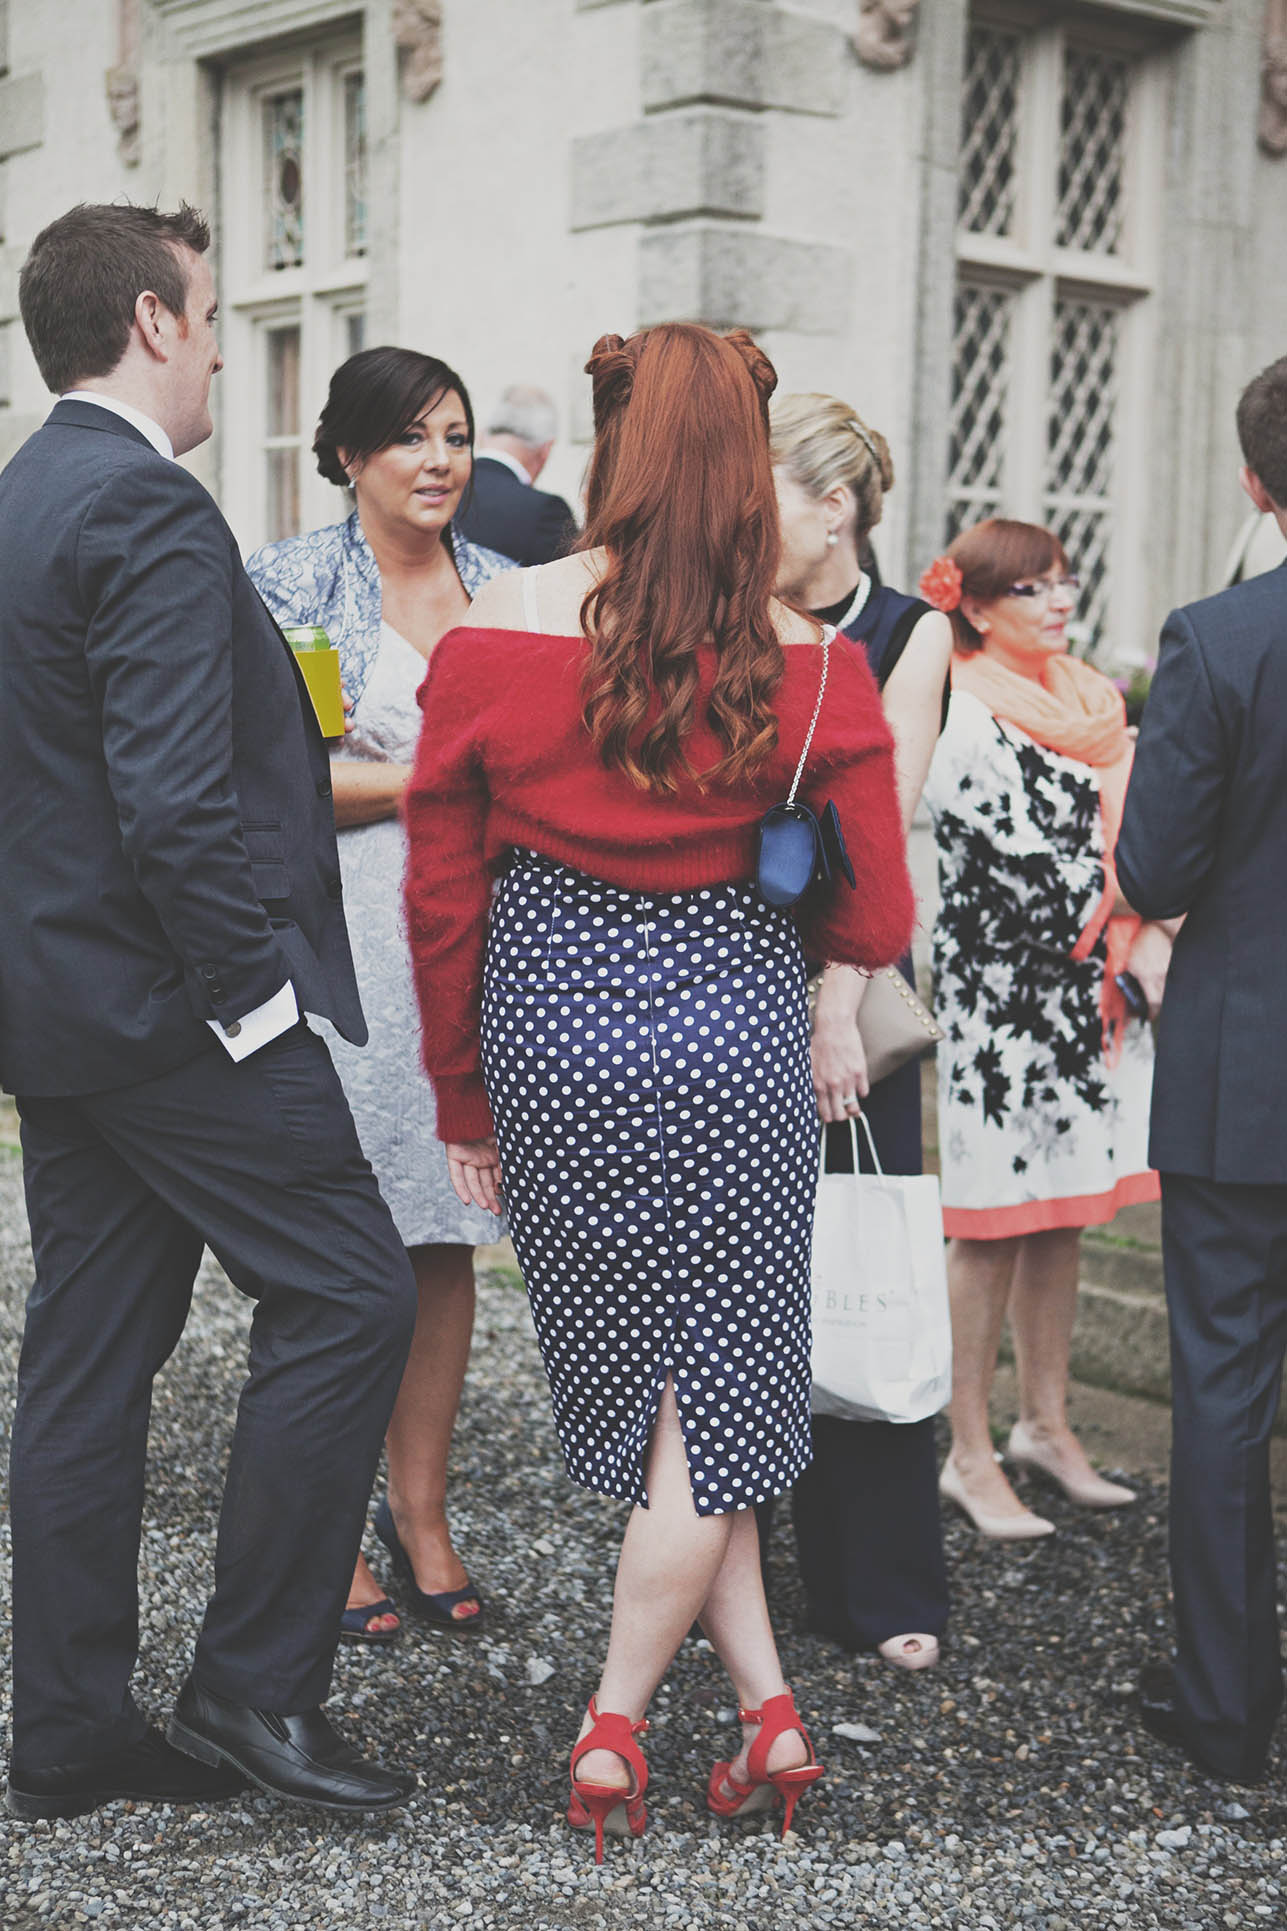 Funky stylish outfit at Borris House wedding